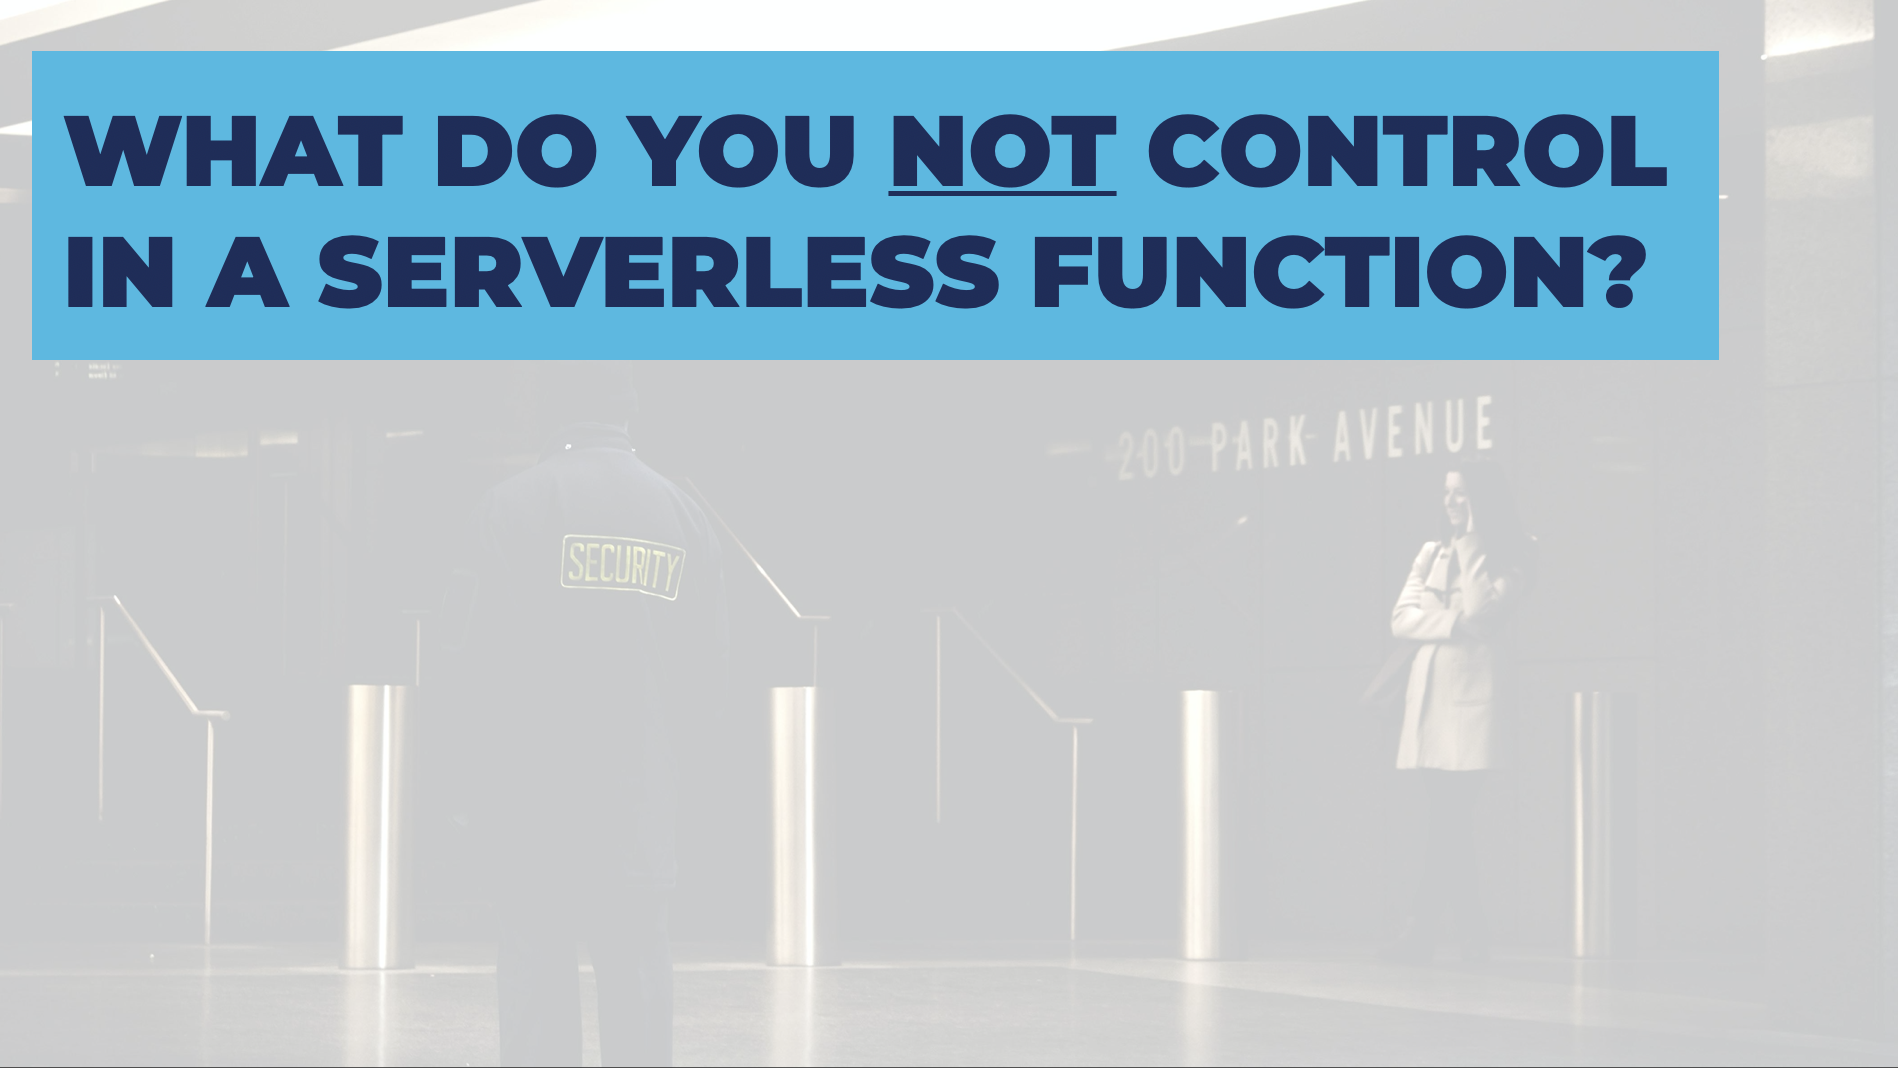 What You Don't Control Serverless